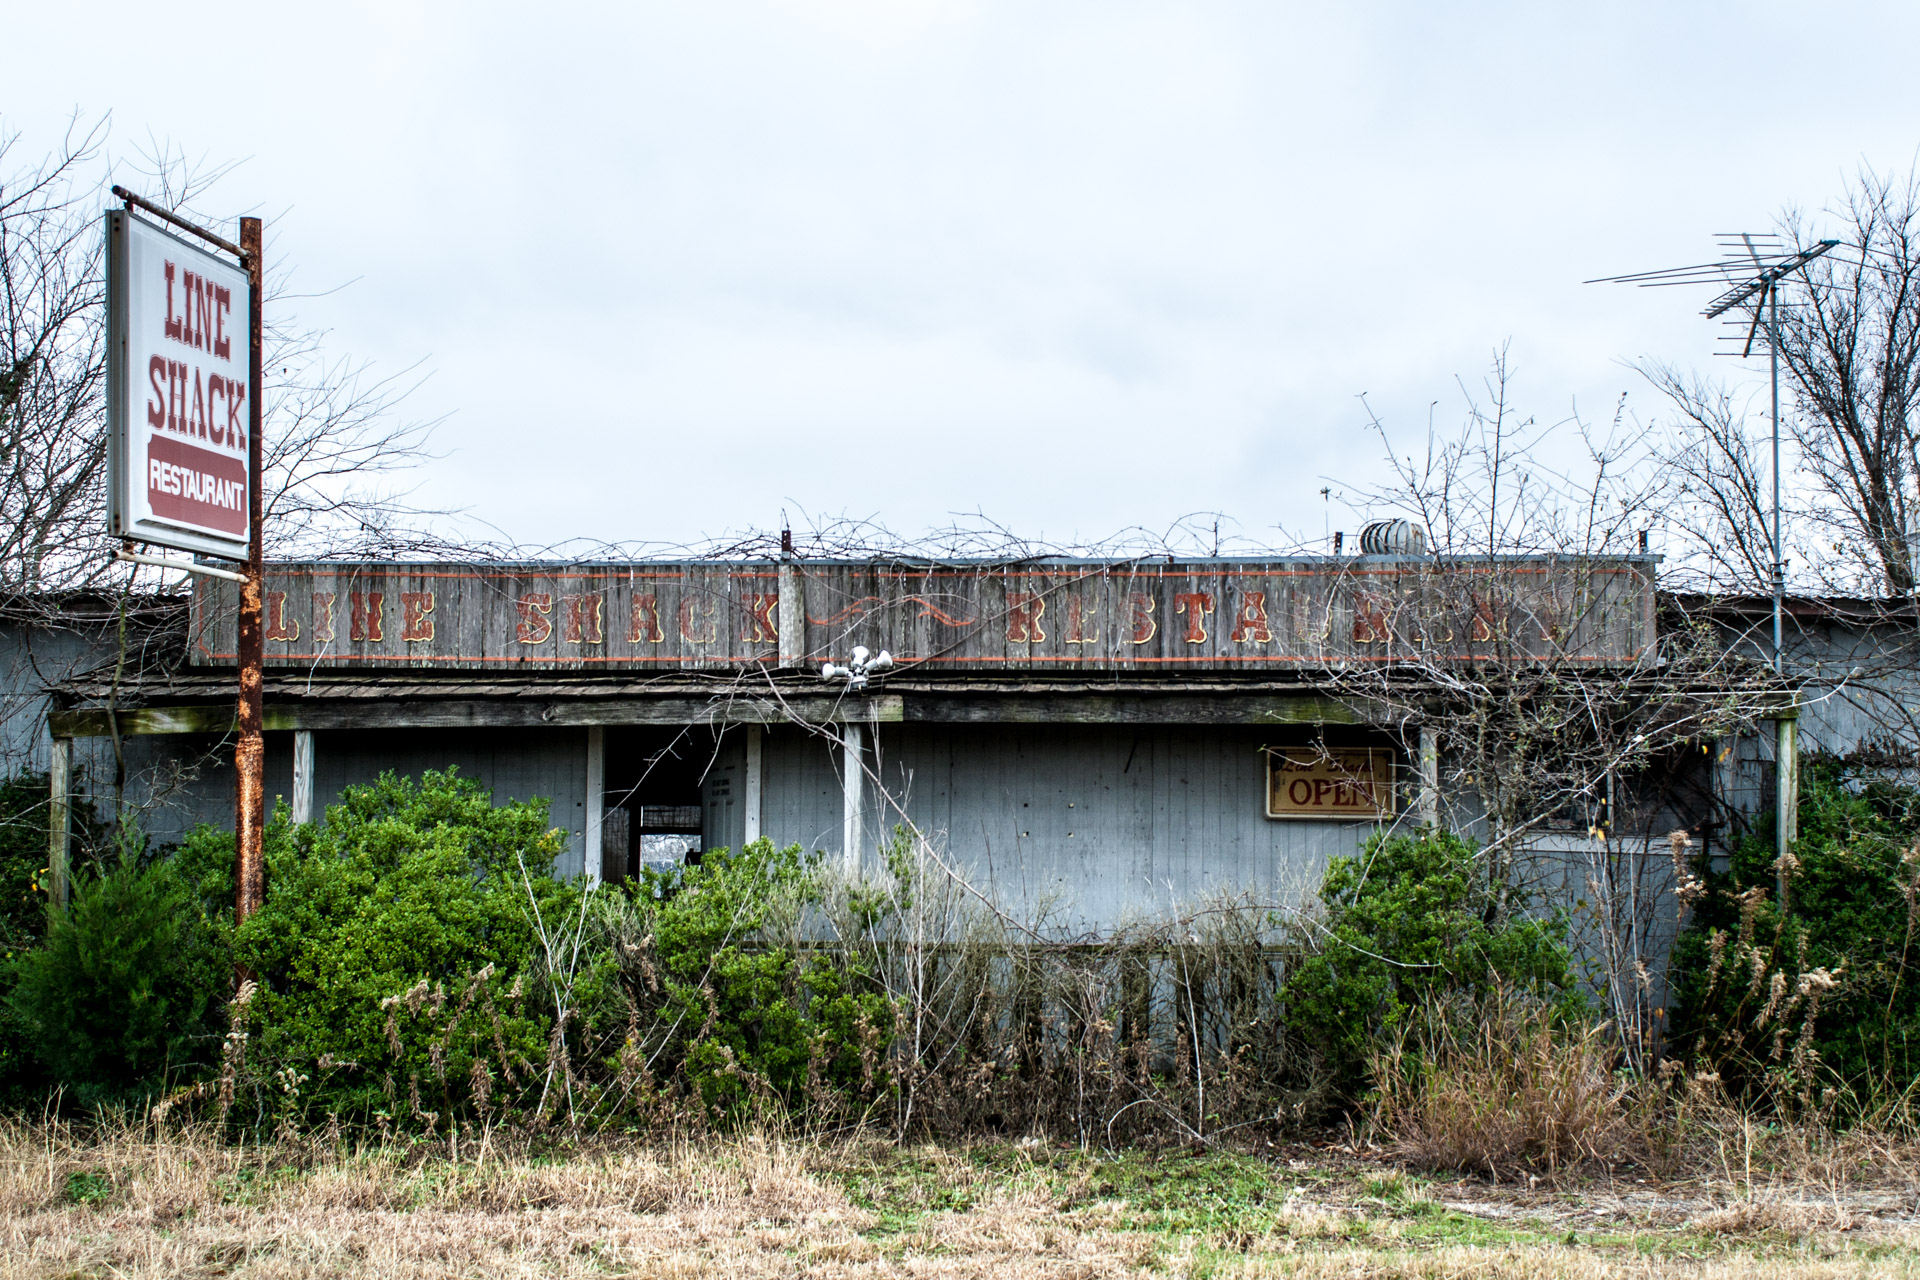 Buckholts, Texas - The Line Shack Restaurant (front close)